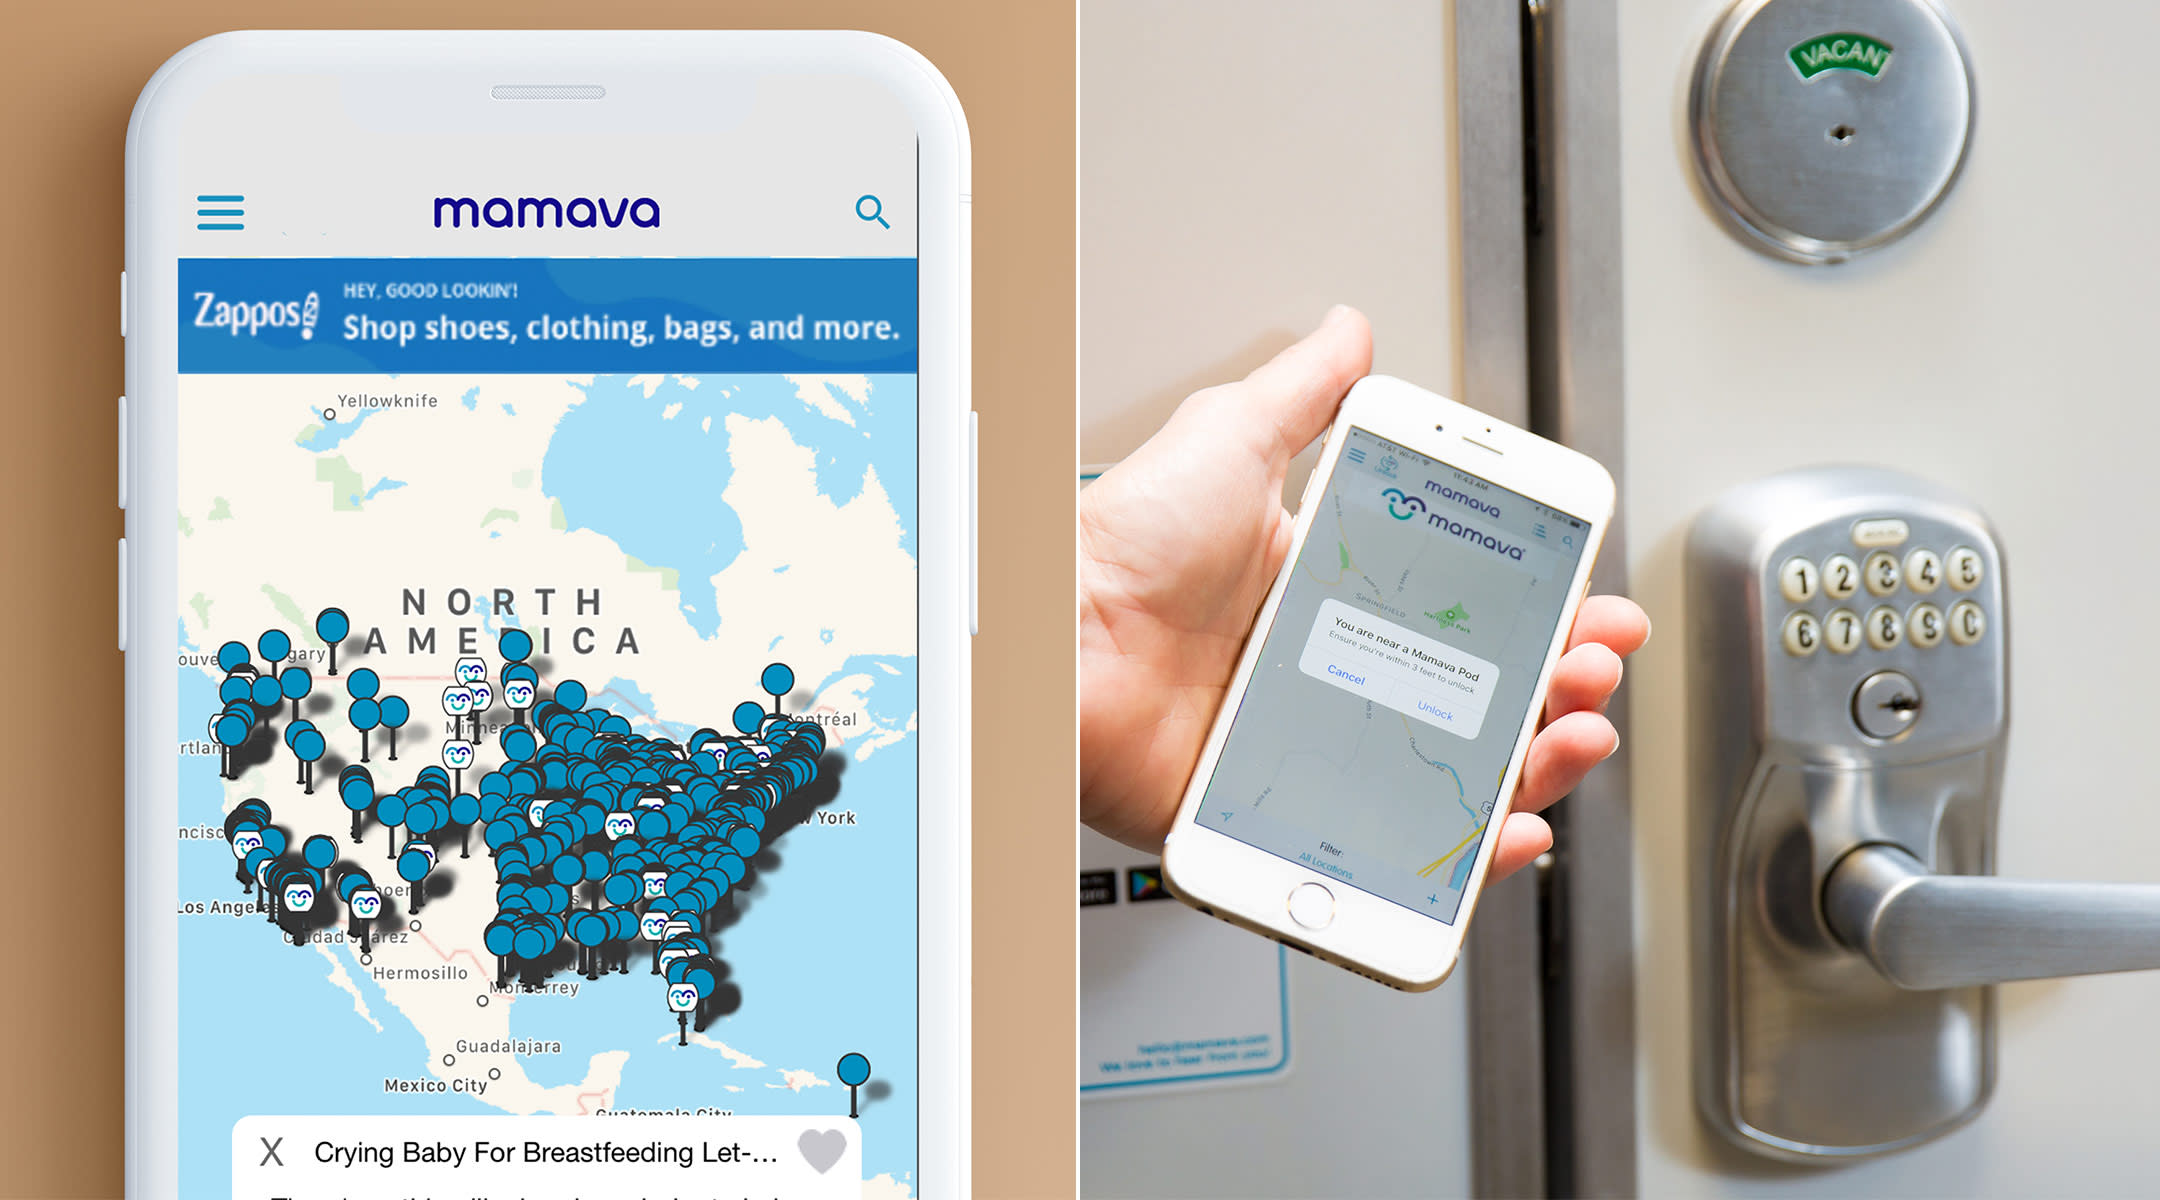 mamava releases mobile app that tells you where their breastfeeding pods are located.